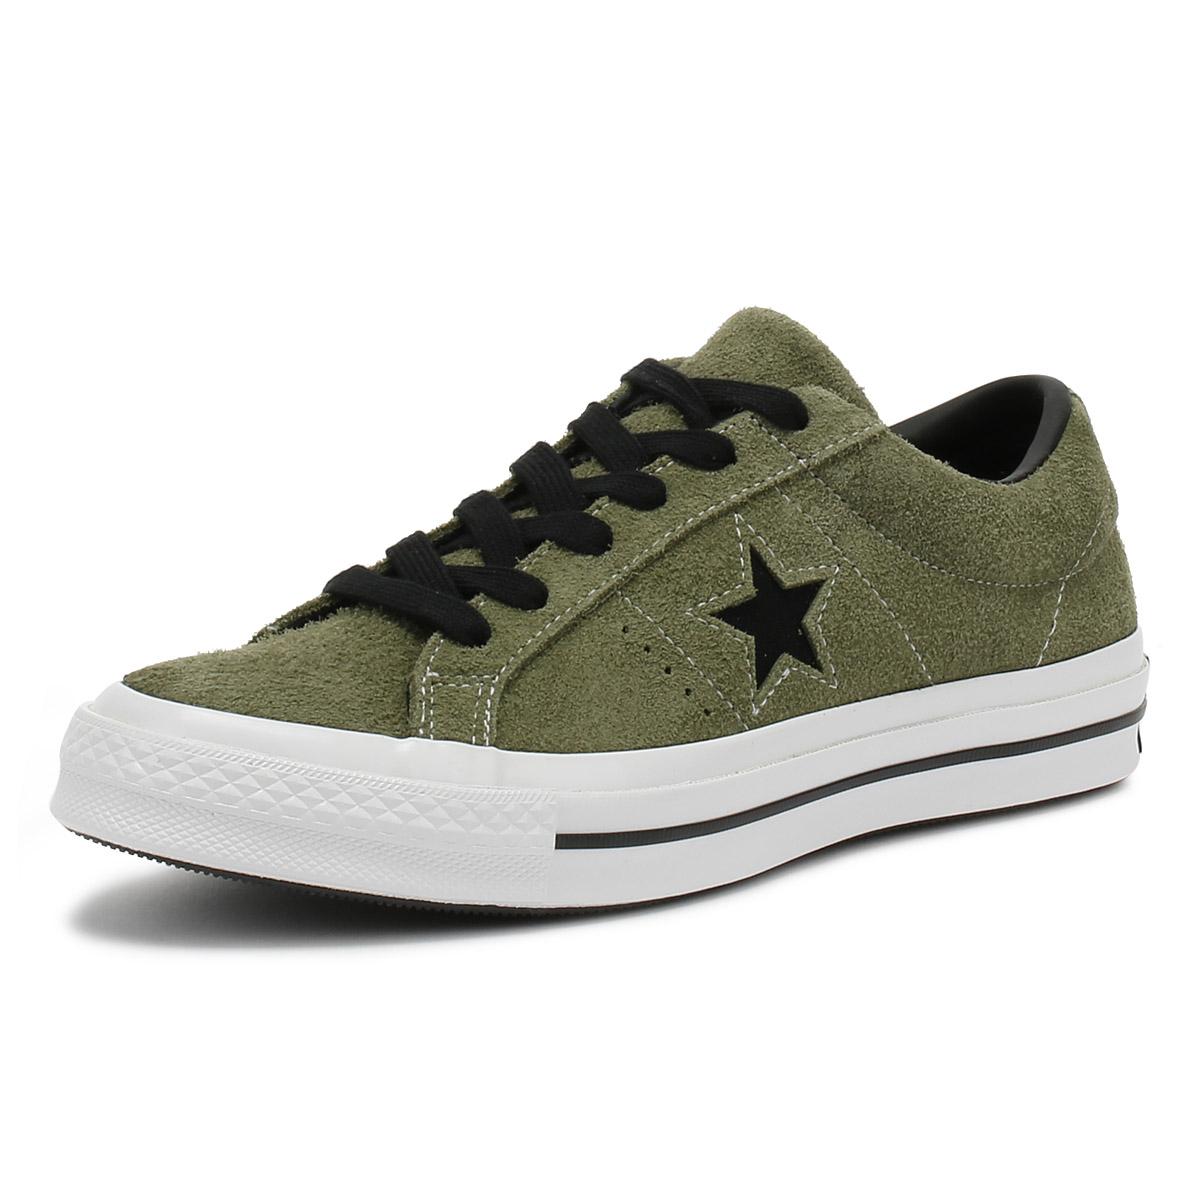 2converse one star ox uomo